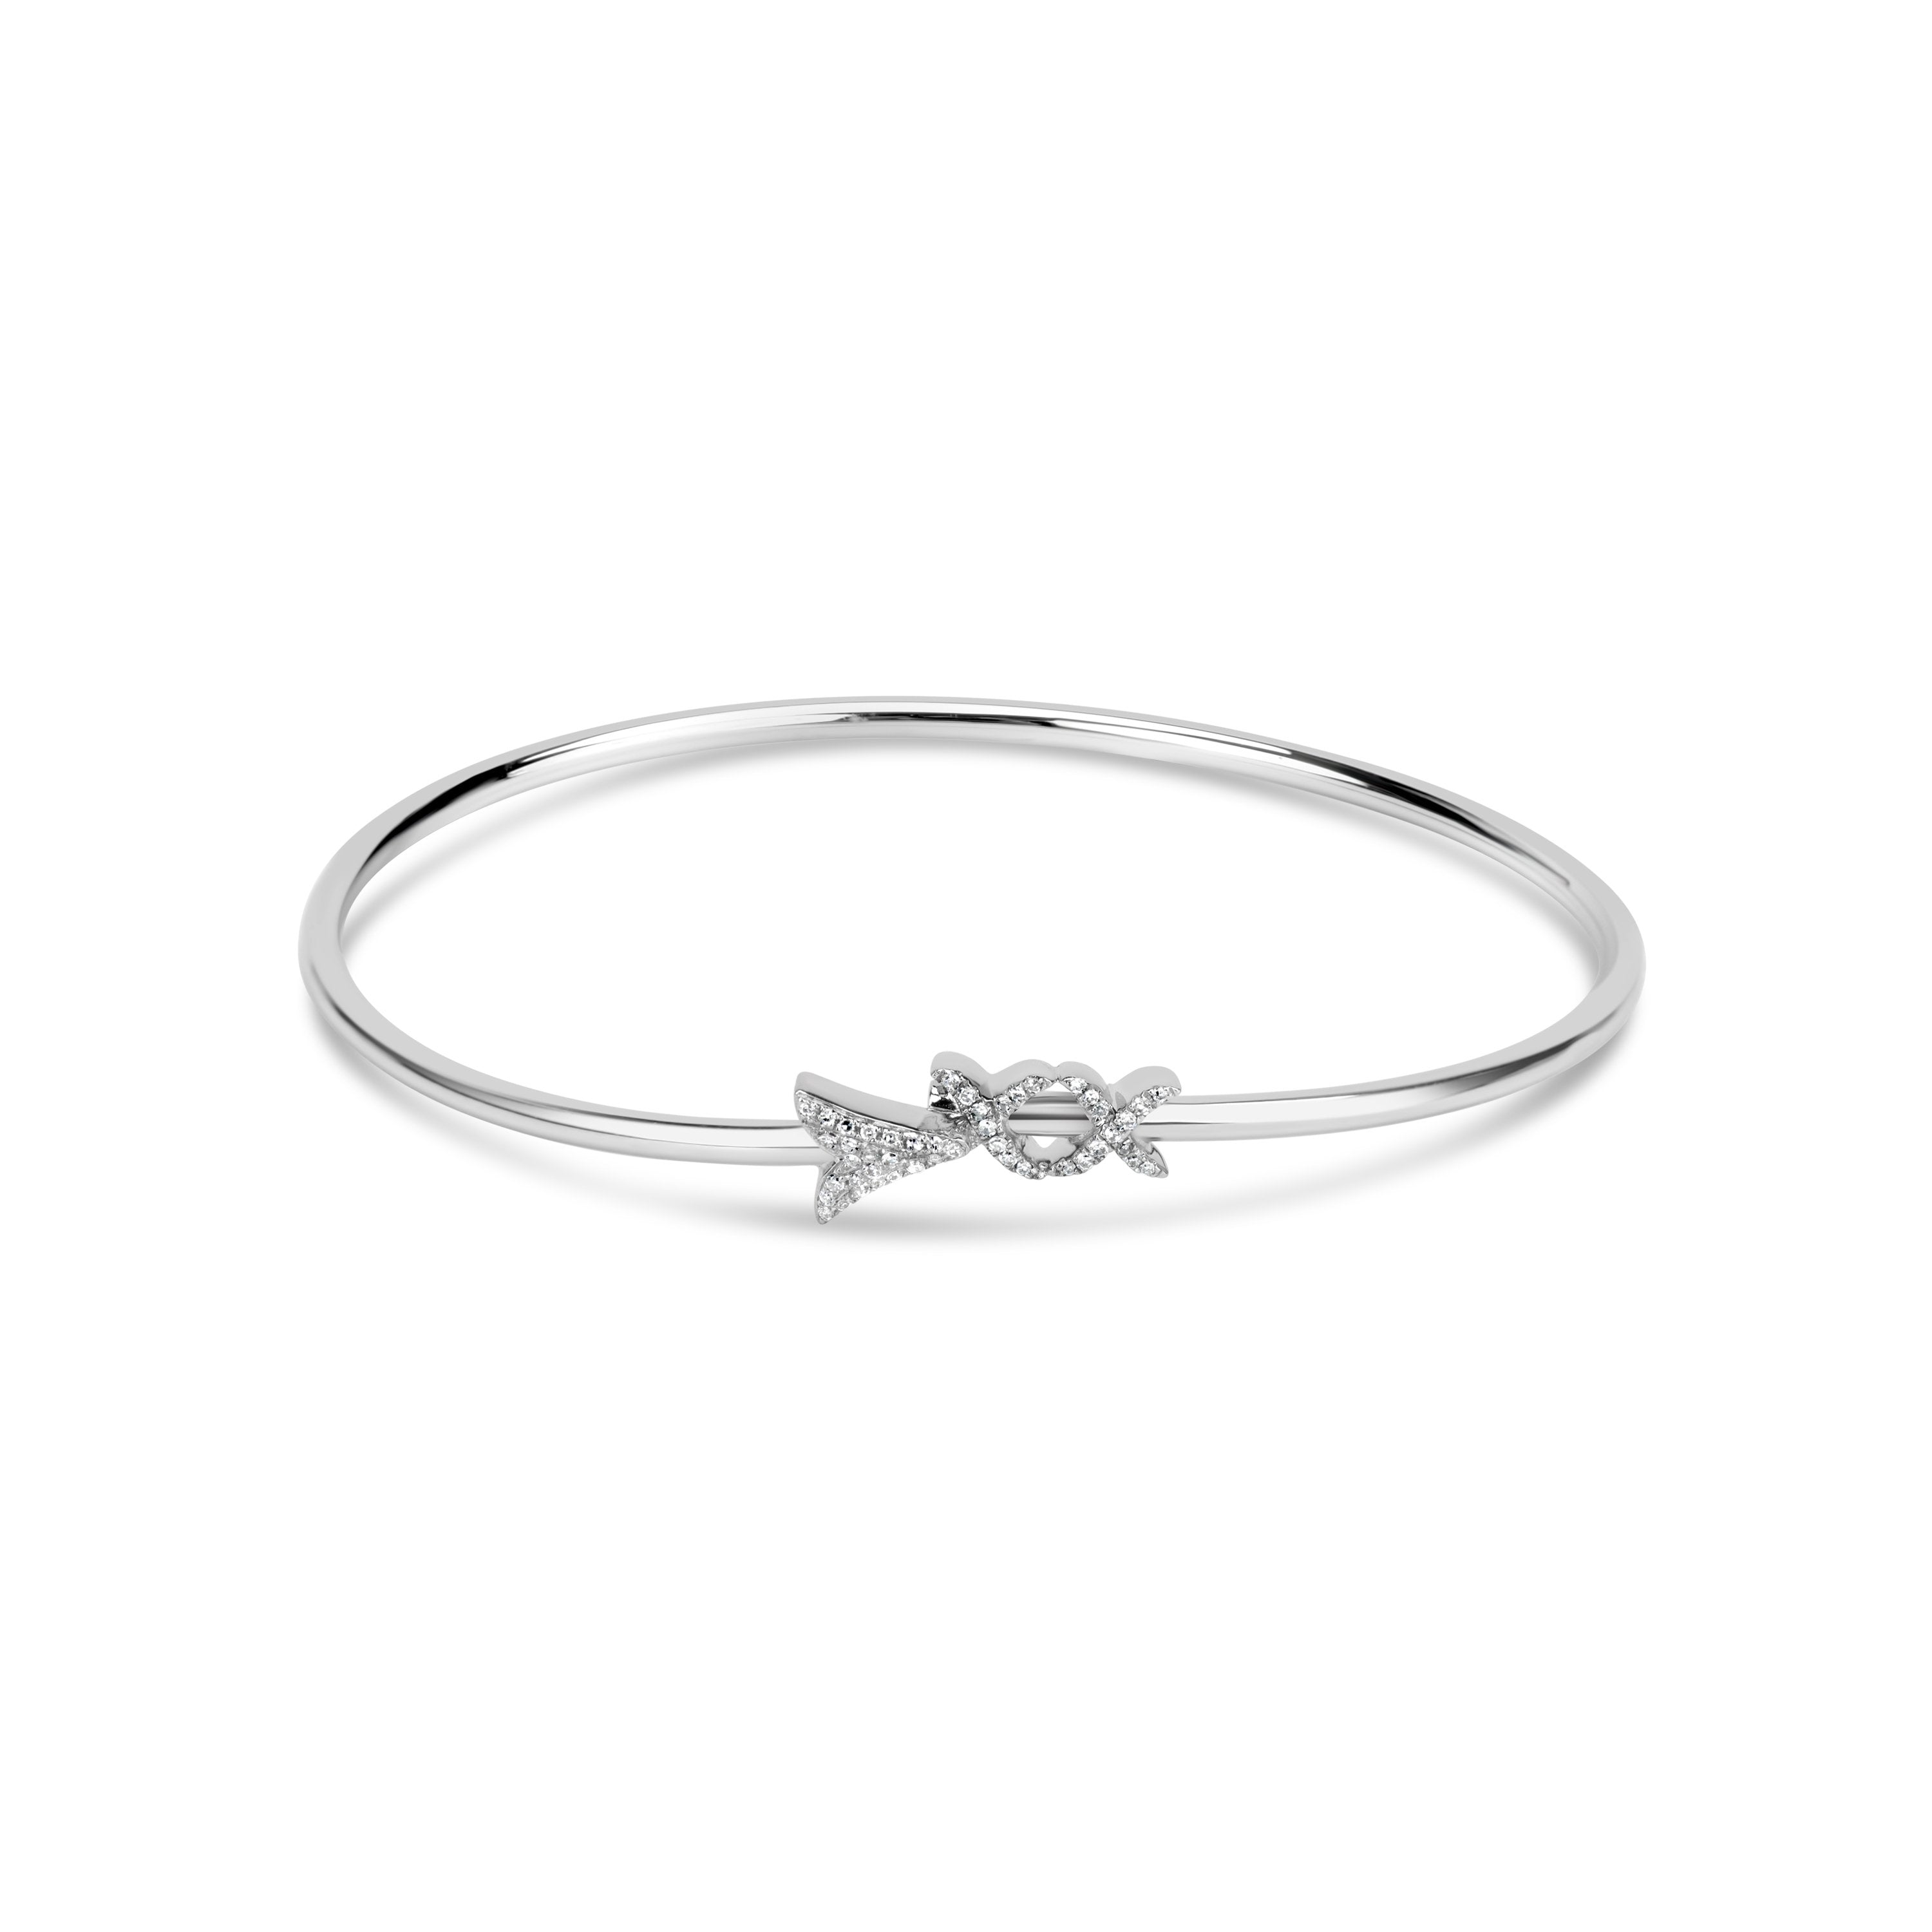 Arley Diamond Arrow Bangle Bracelet